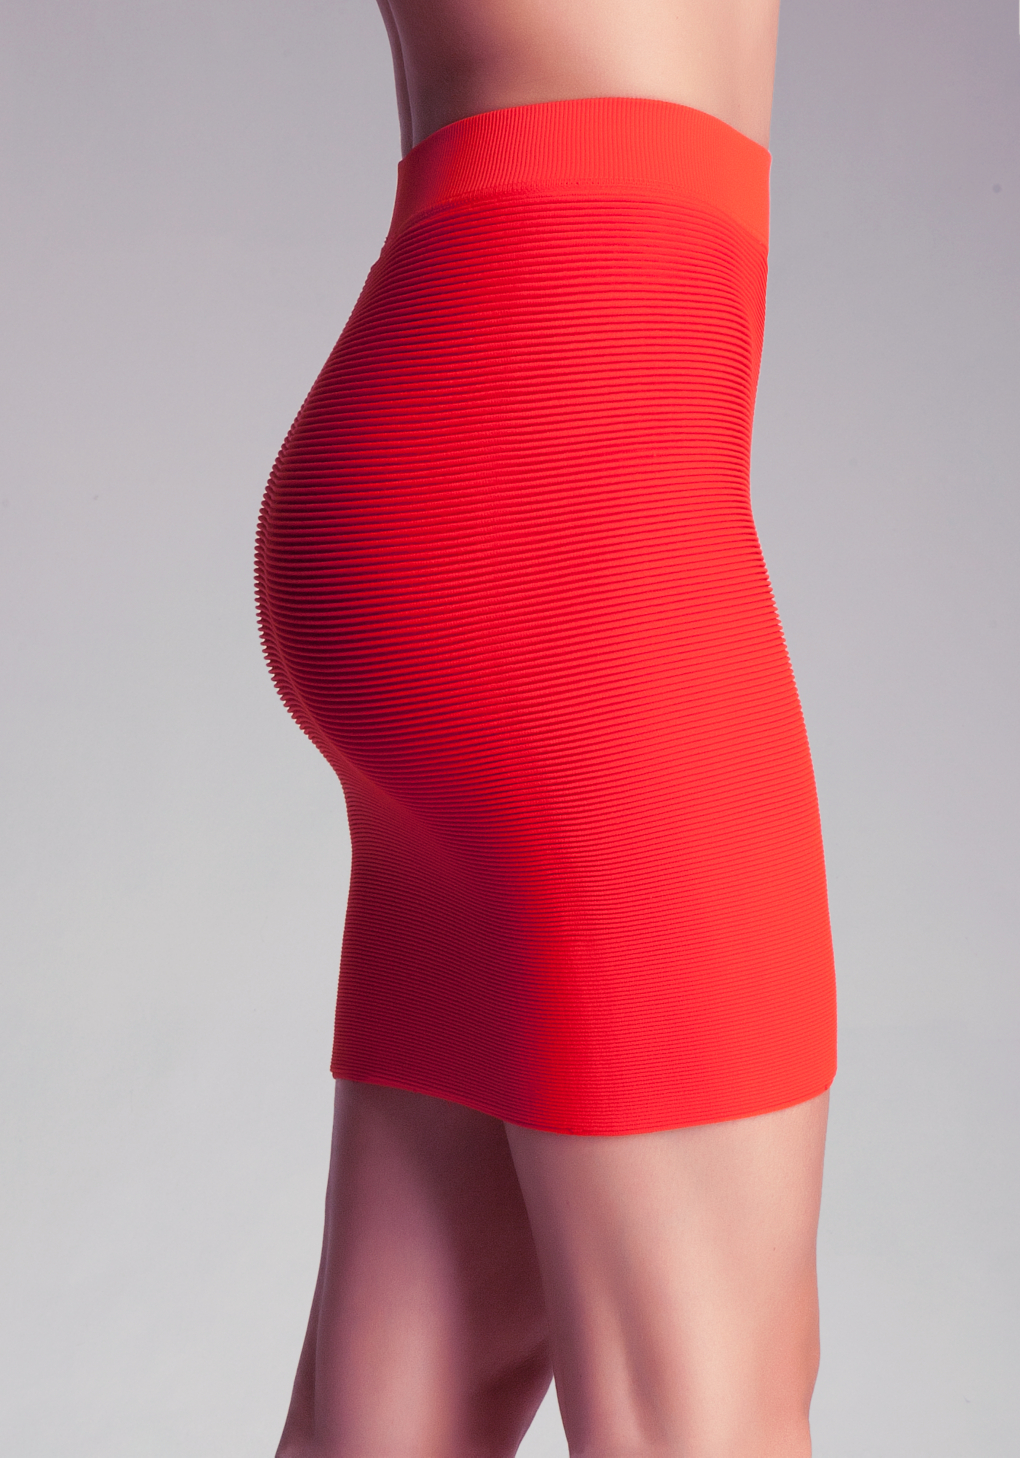 Bebe Ribbed Bodycon Mini Skirt in Red | Lyst